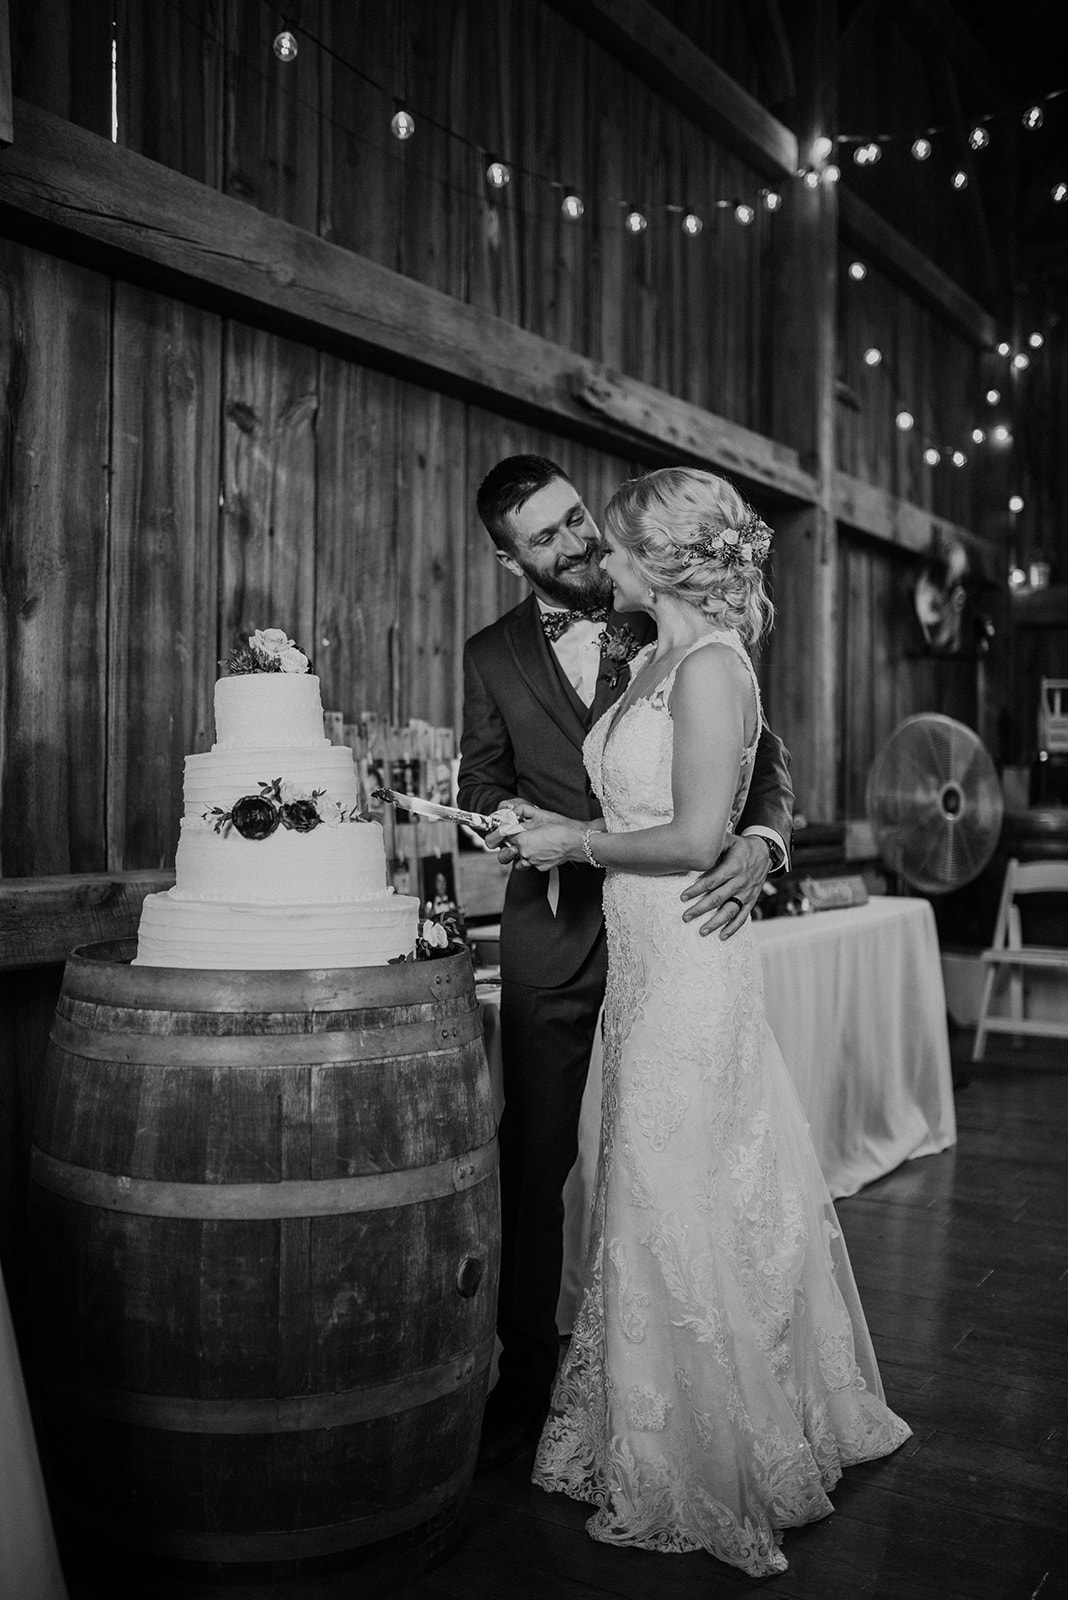 overthevineswisconsinwedding_1189.jpg